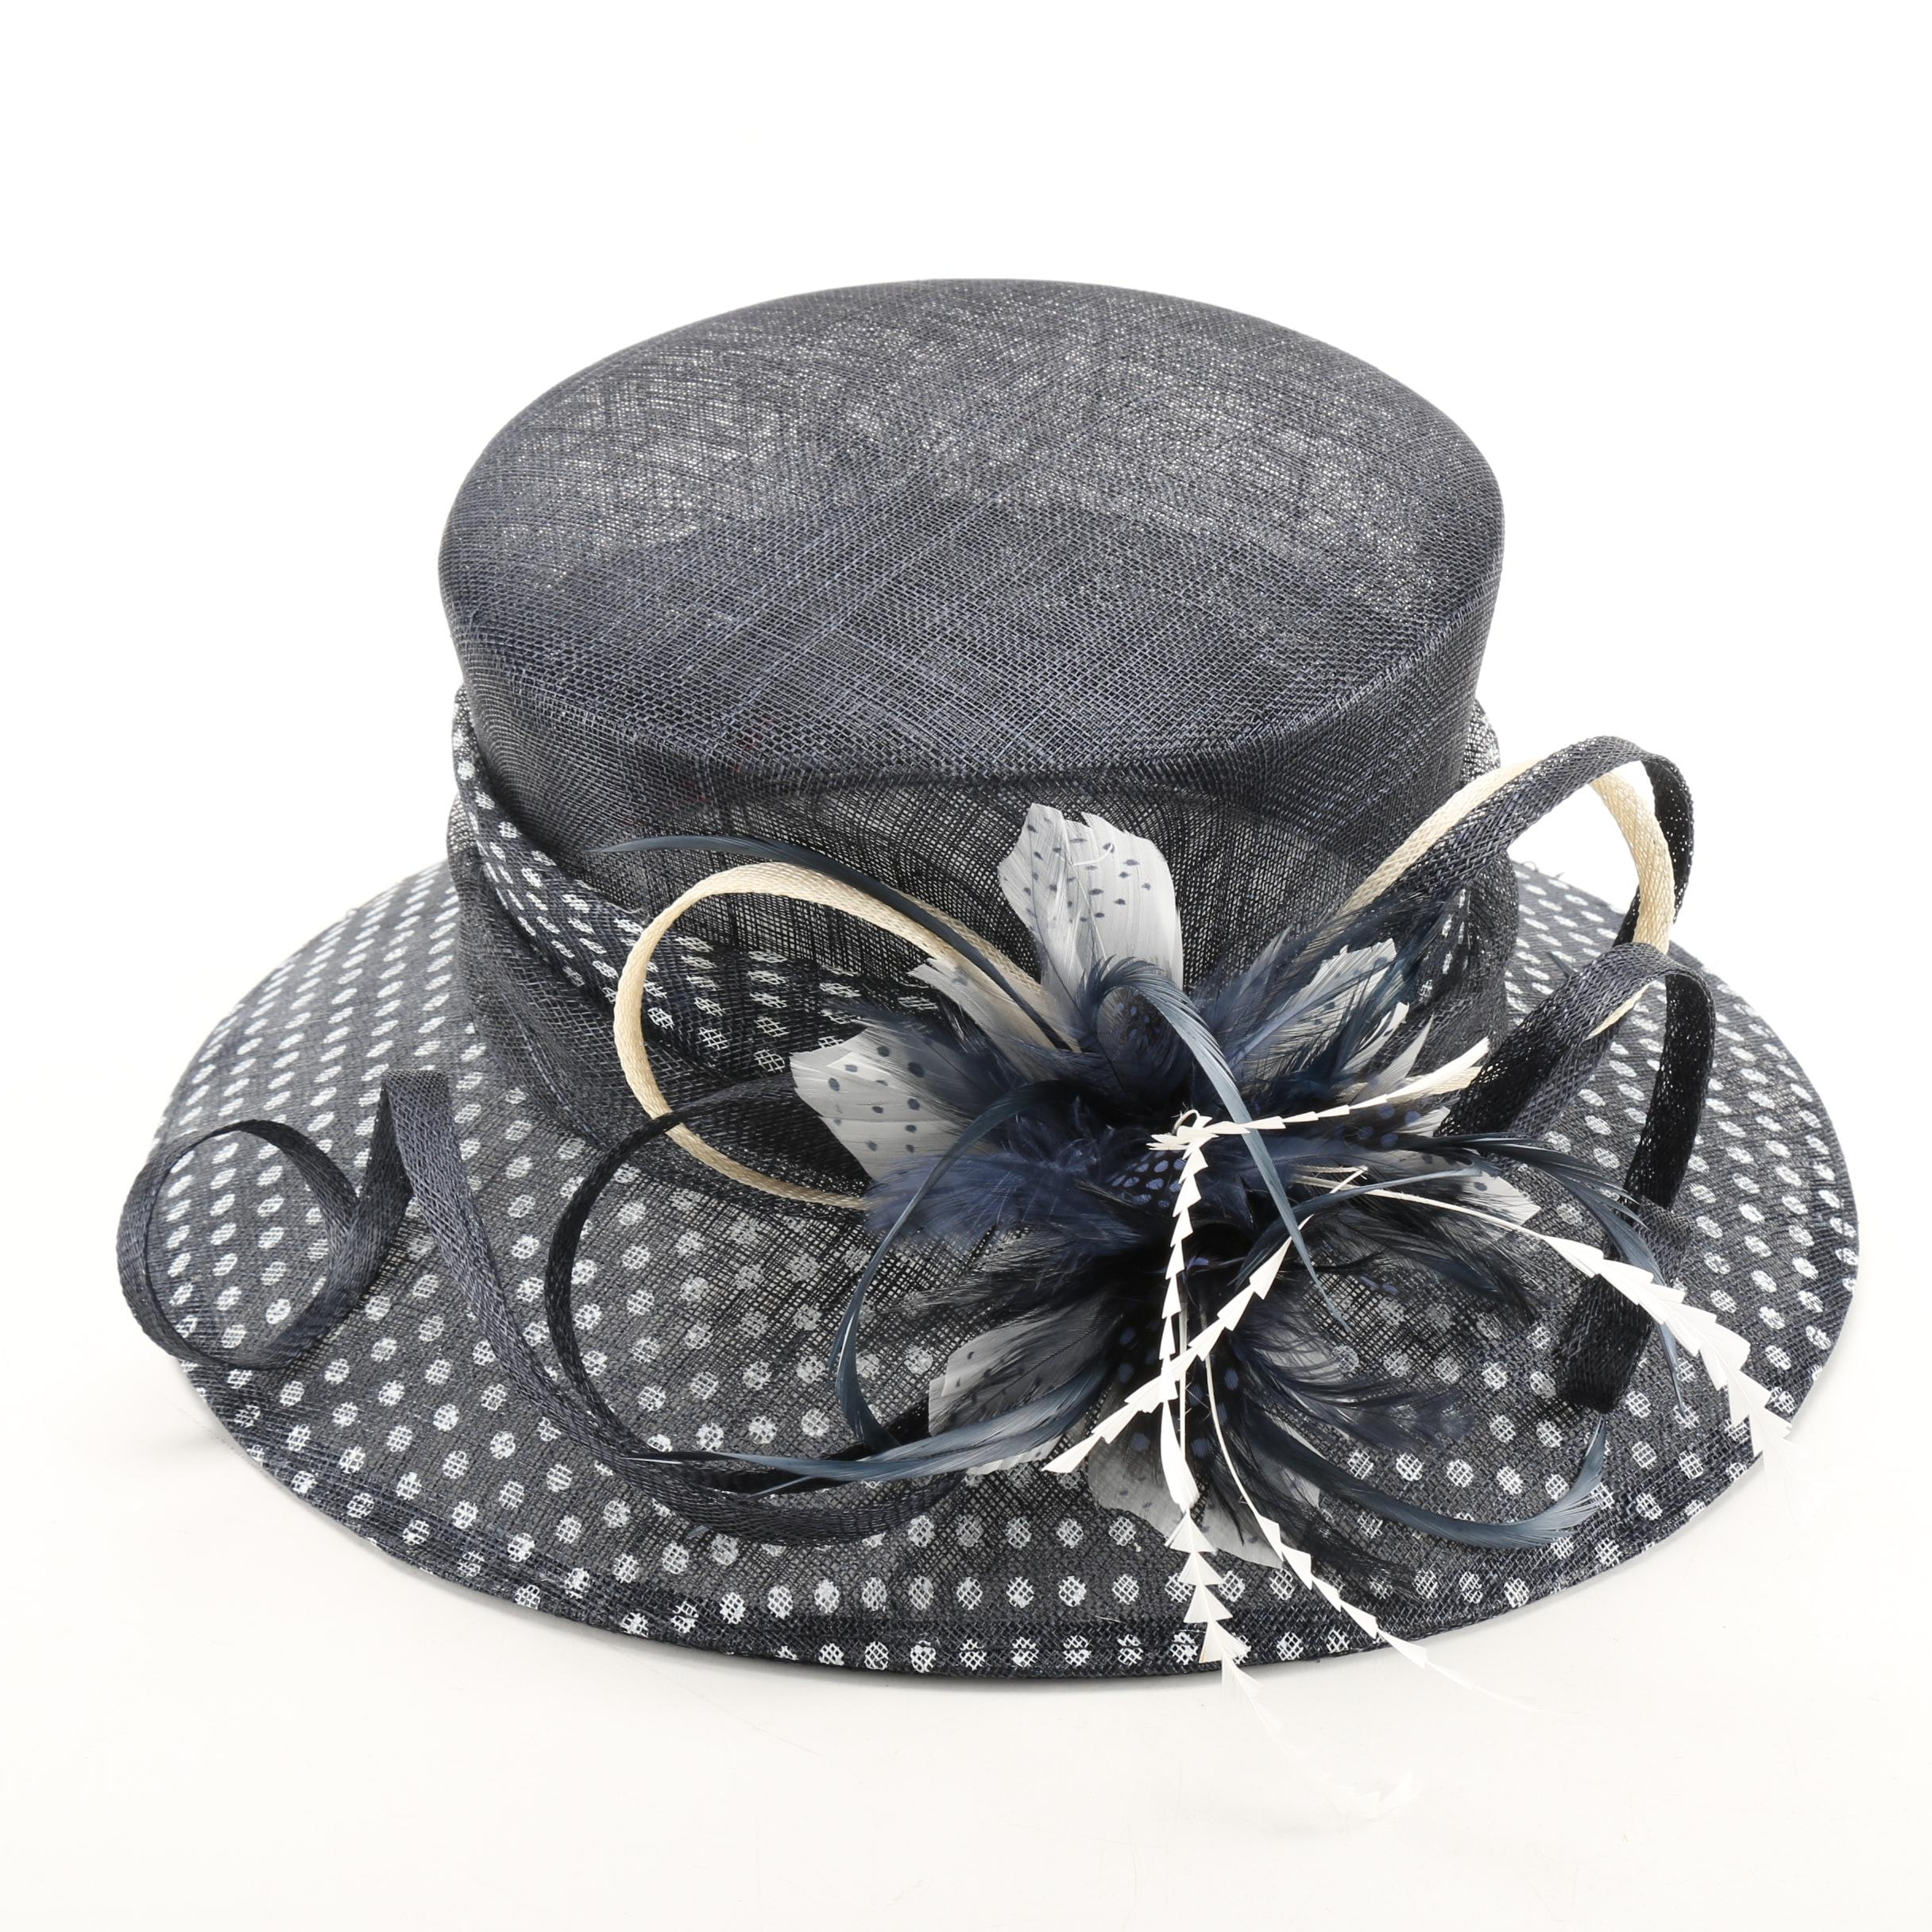 Dee's Black Woven Hat With White Polka Dots